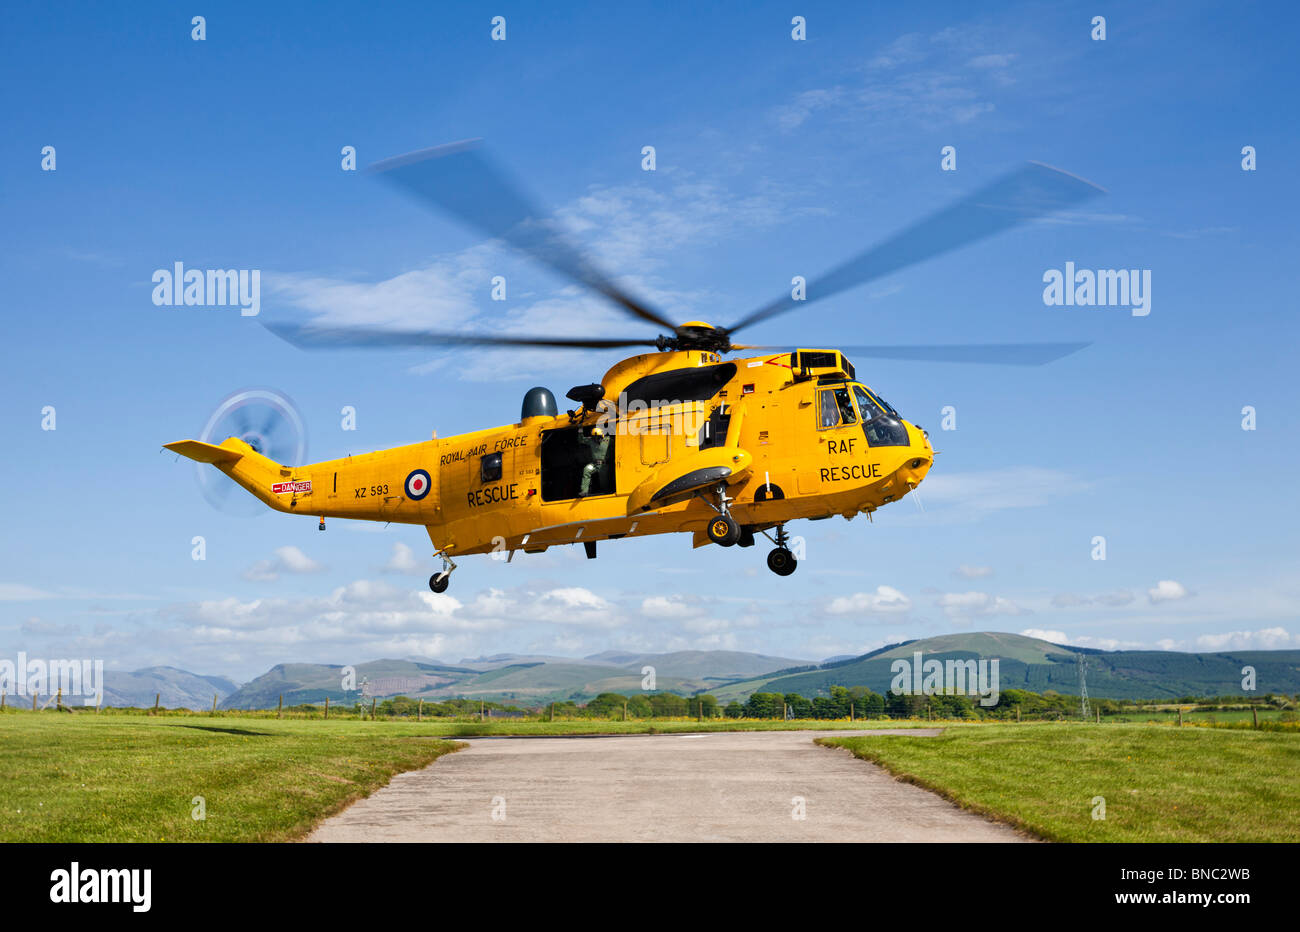 RAF Search and Rescue Sea King helicopter in flight, Cumbria, England, UK - Stock Image